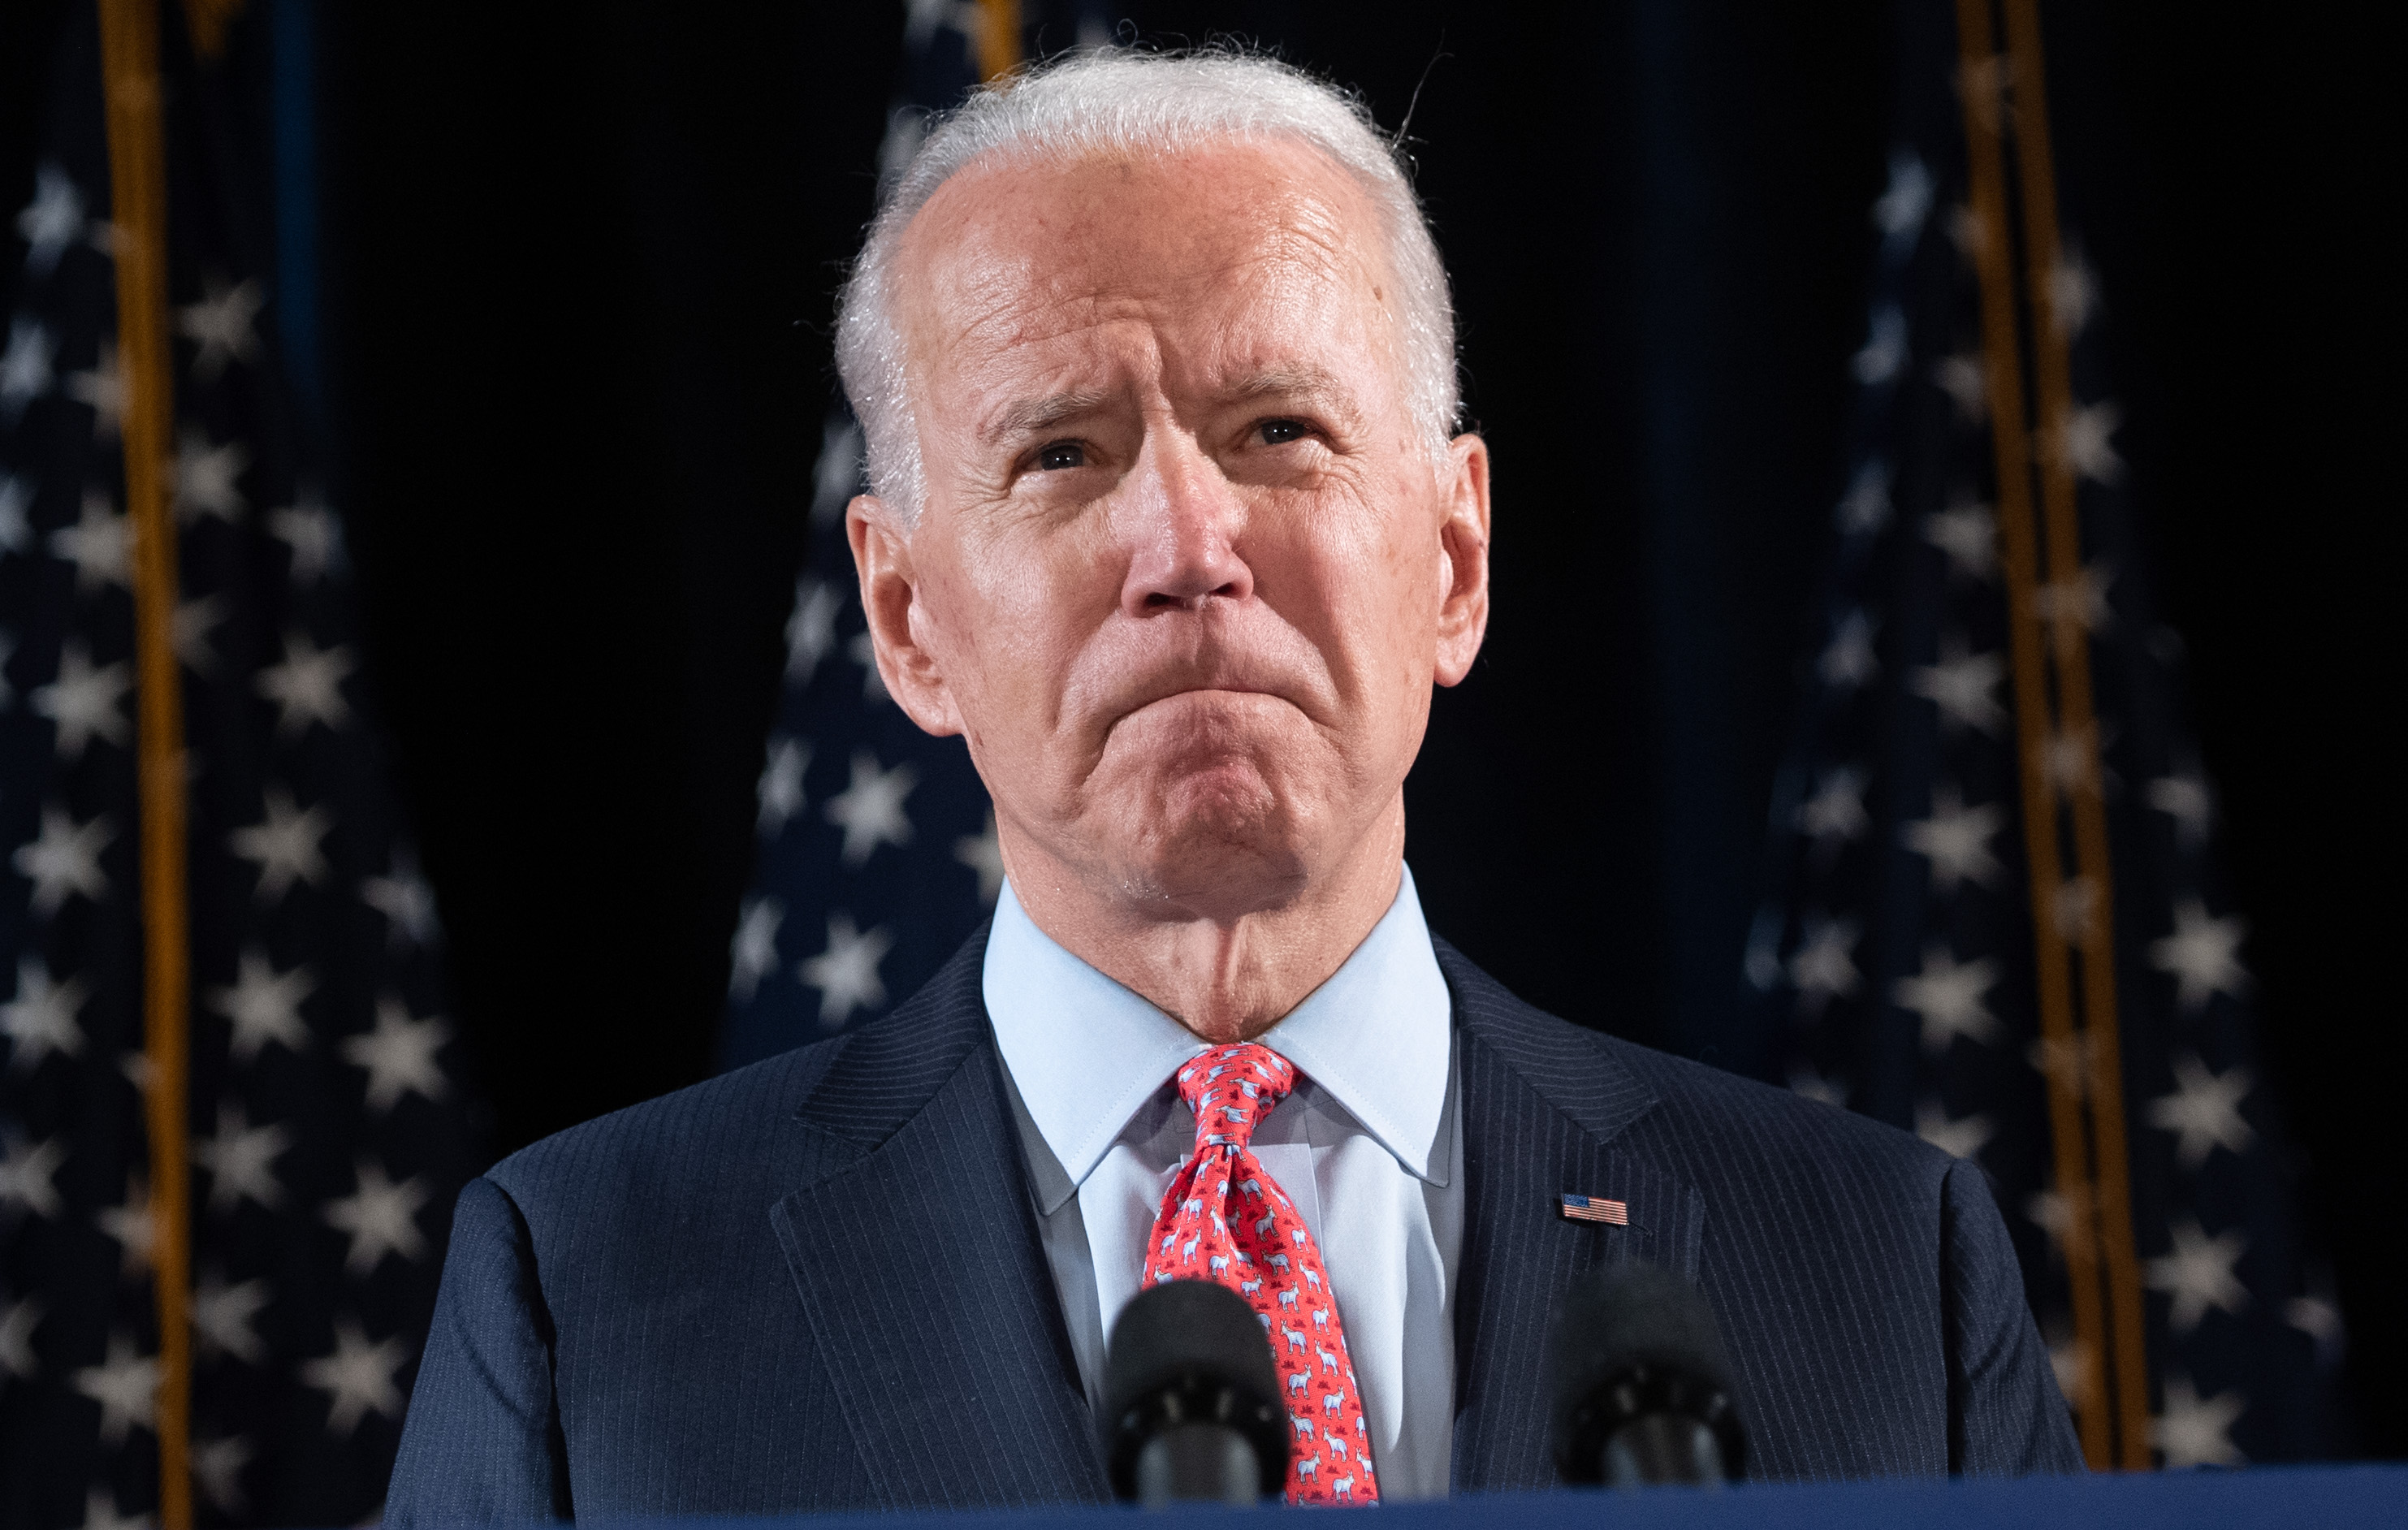 Former Vice President and Democratic presidential hopeful Joe Biden speaks about Covid-19 during a press event in Wilmington, Delaware, on March 12.